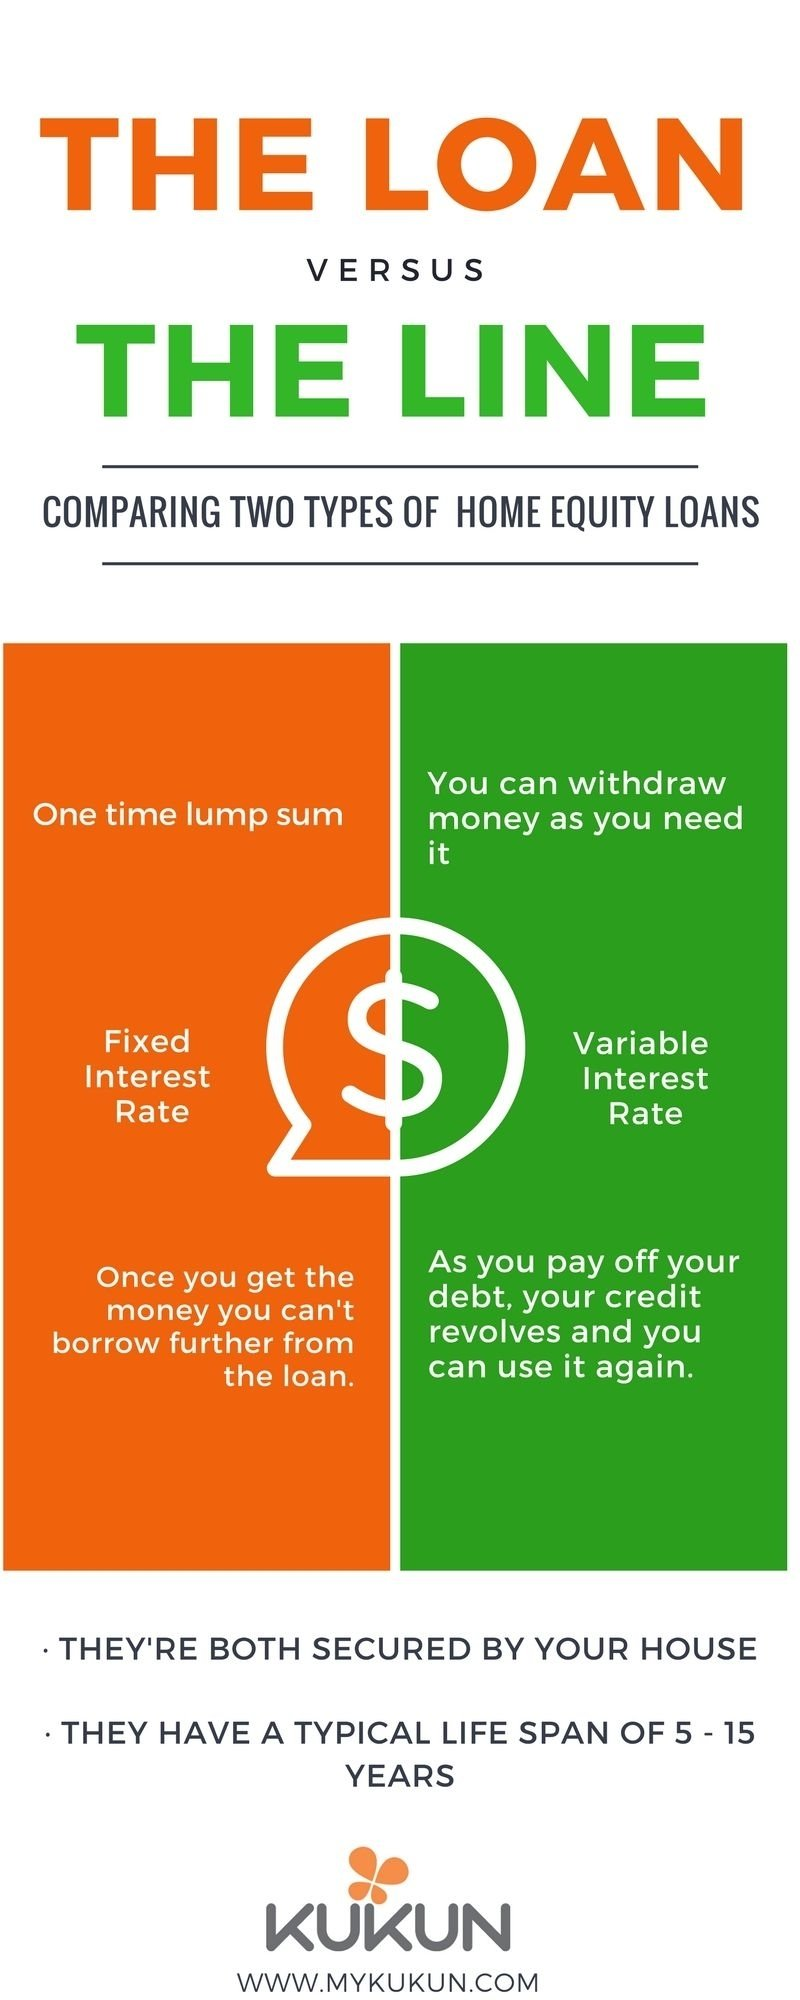 10 Spectacular Are Home Equity Loans A Good Idea the loan vs the line home equity loans infographic life hacks 2020